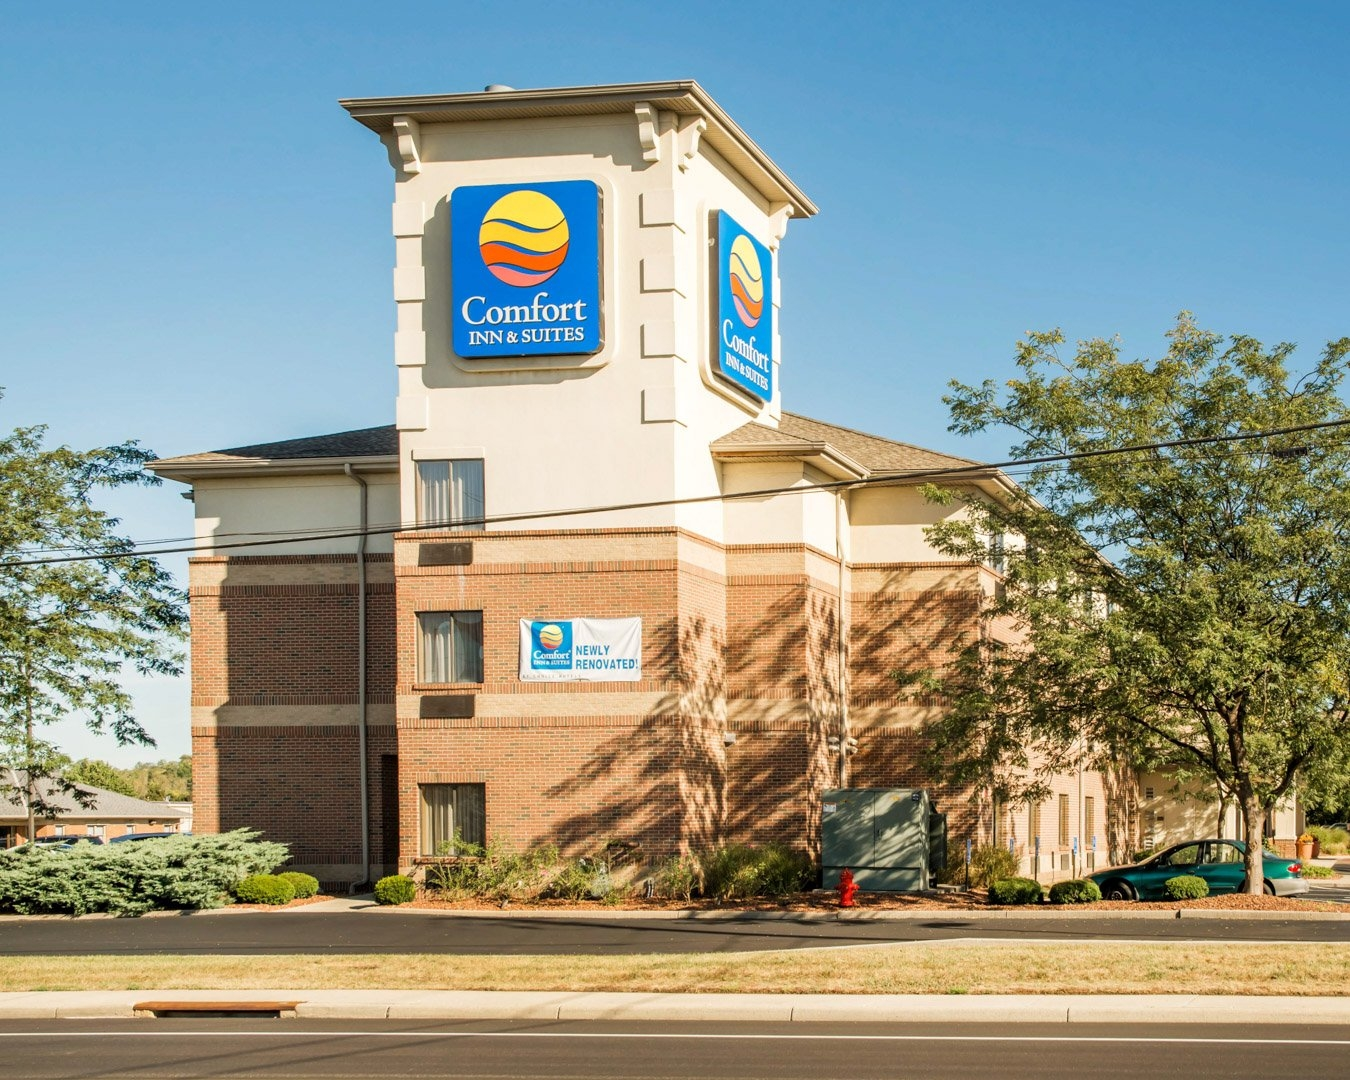 Comfort Inn Amp Suites Coupons West Chester Oh Near Me